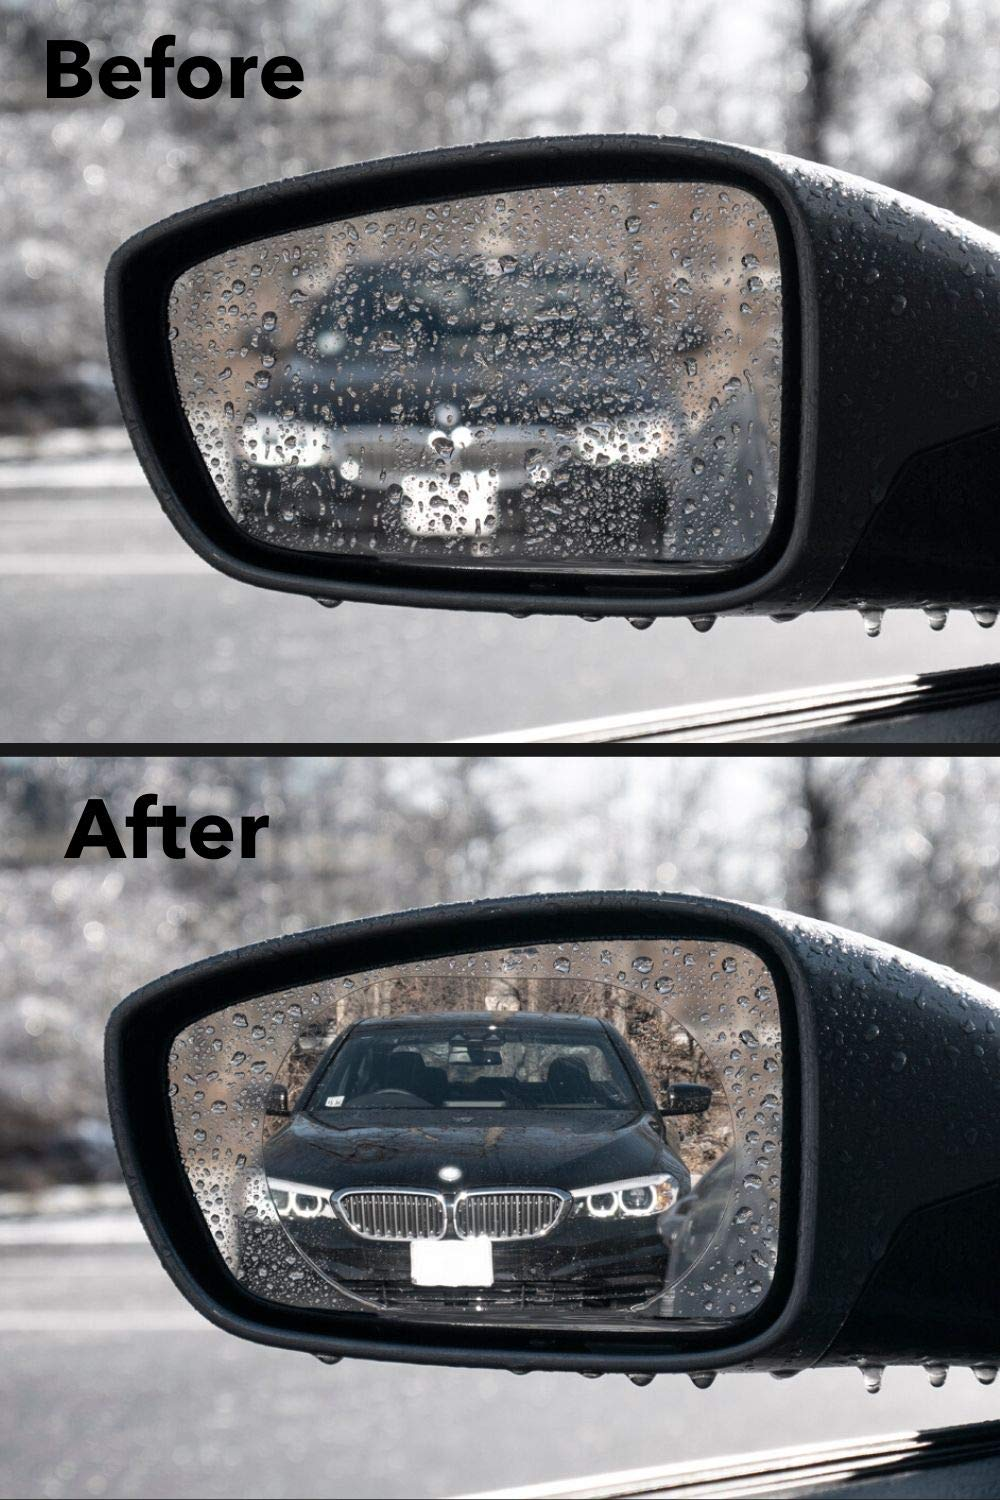 Anti-Scratch Water Anti-Glare Waterproof Protective Nano Shield Stickers for All Vehicles HD Crystal Vision Hydrophilic Mirror Protector Kit: Anti Fog Glare Film for Car Side View Mirrors